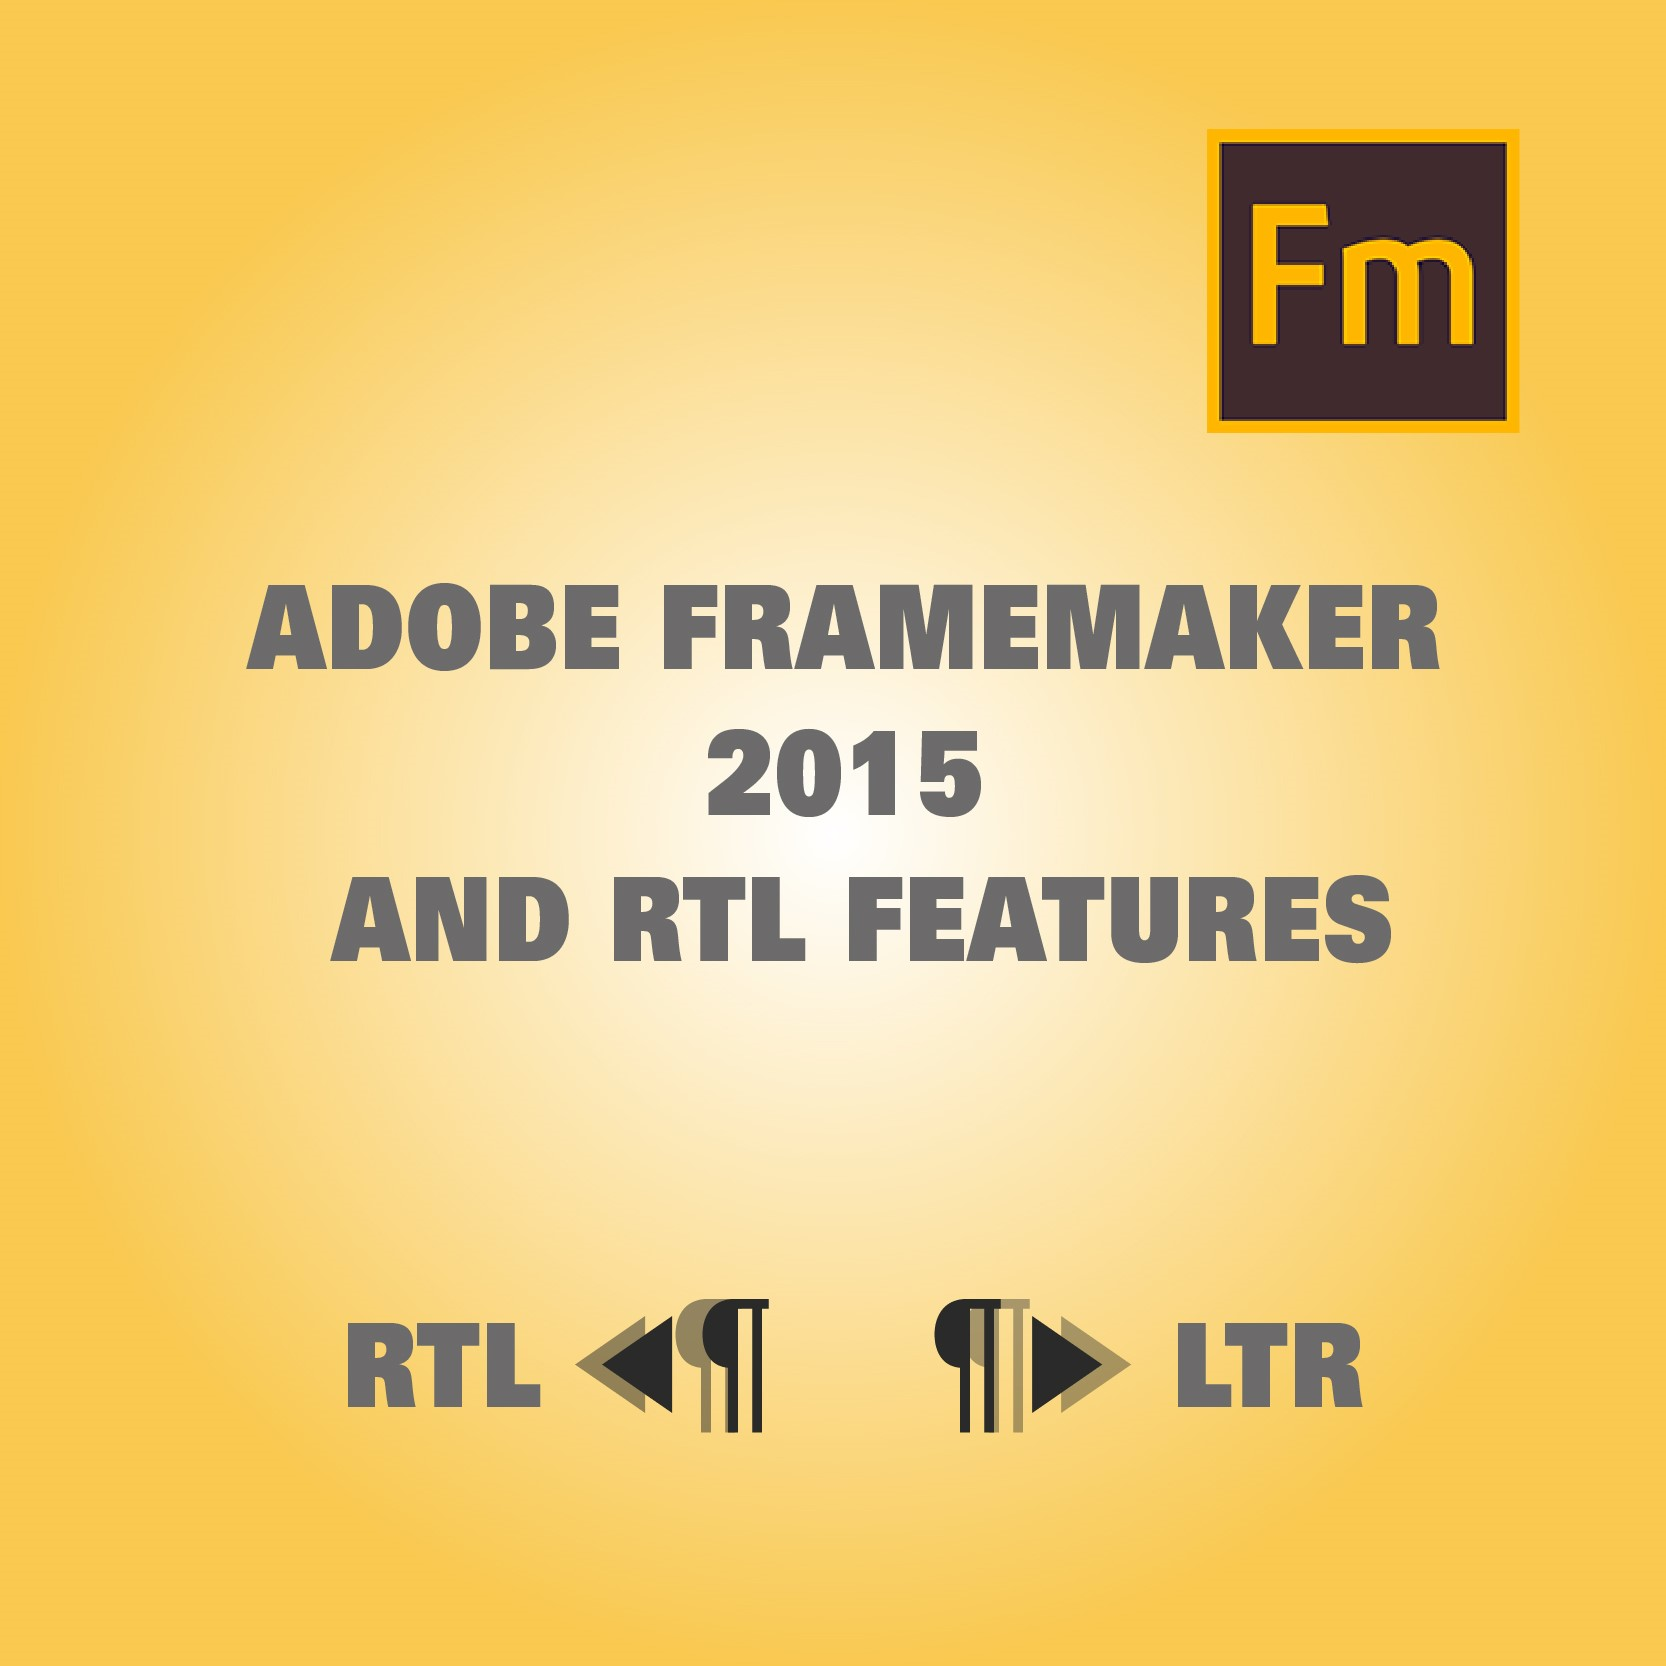 Adobe FrameMaker 2015 and RTL Features - Globalization